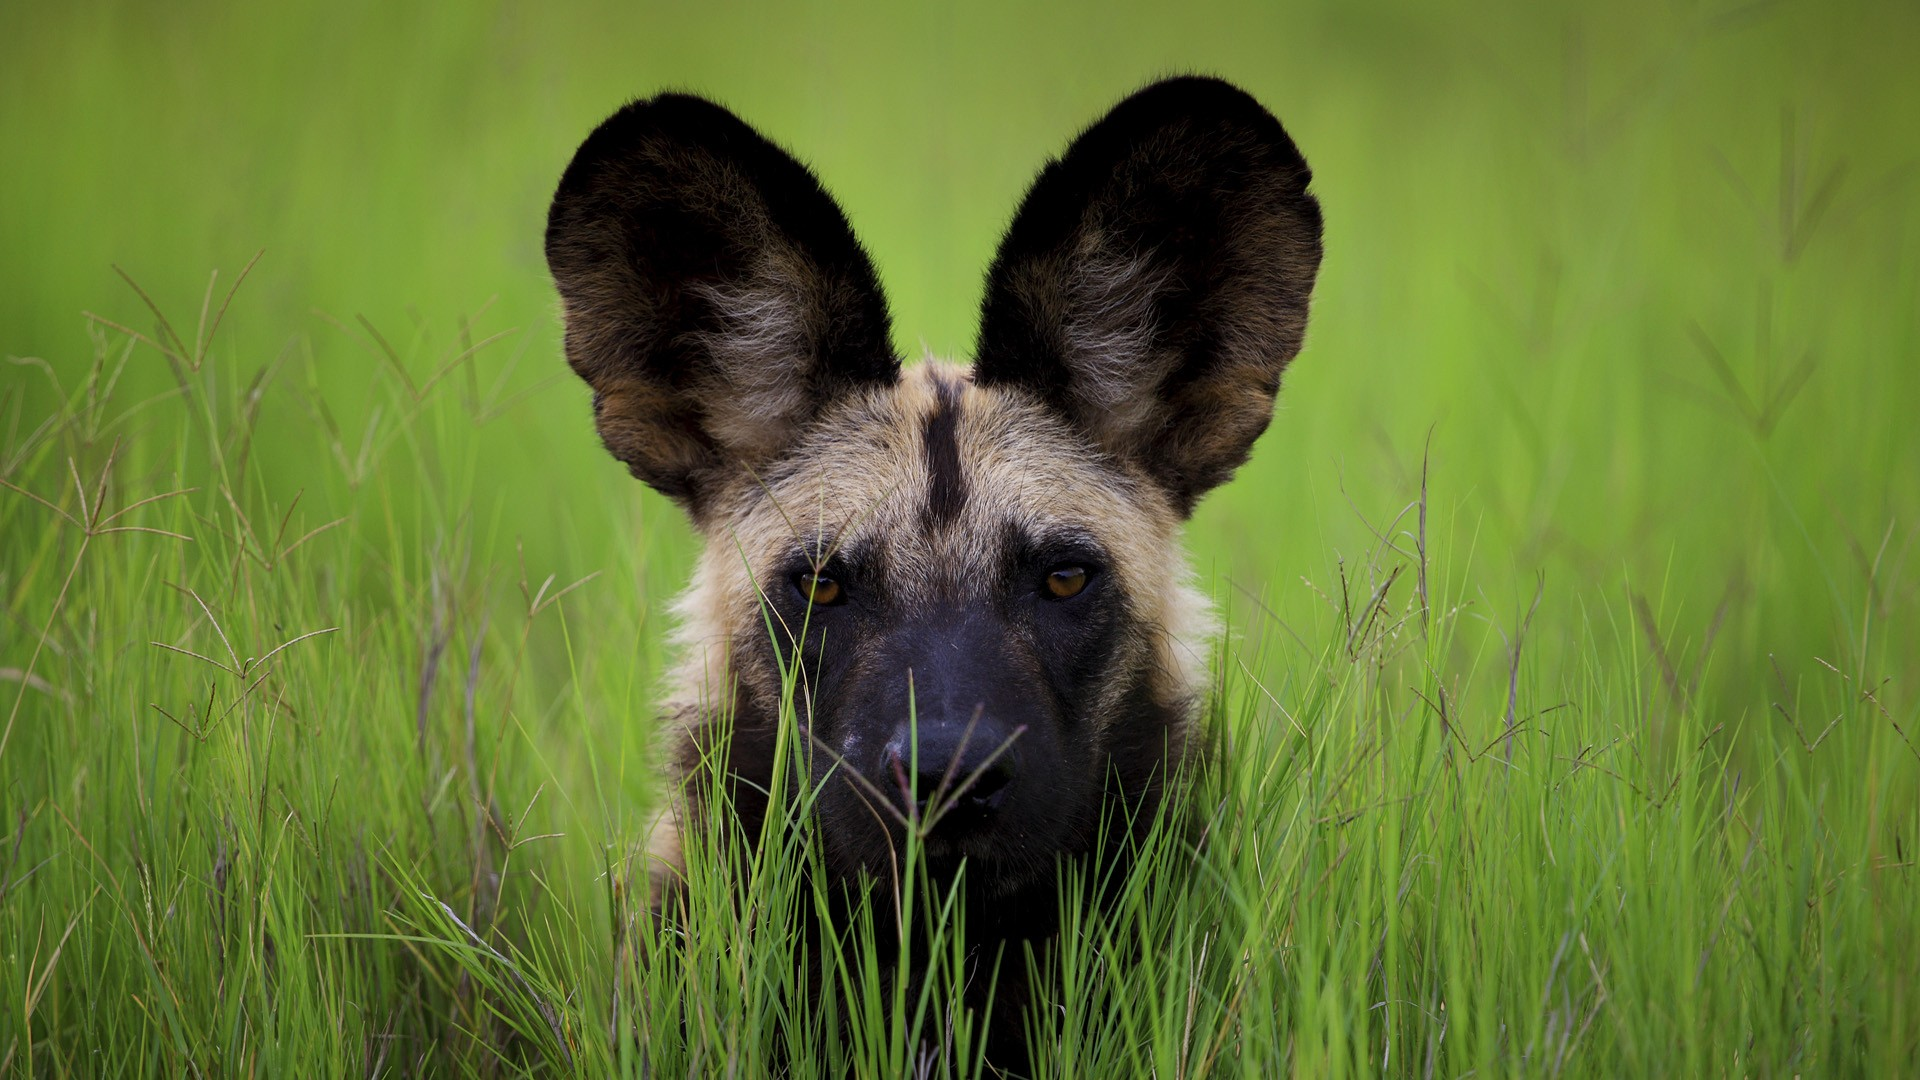 Wild Dog Wallpaper